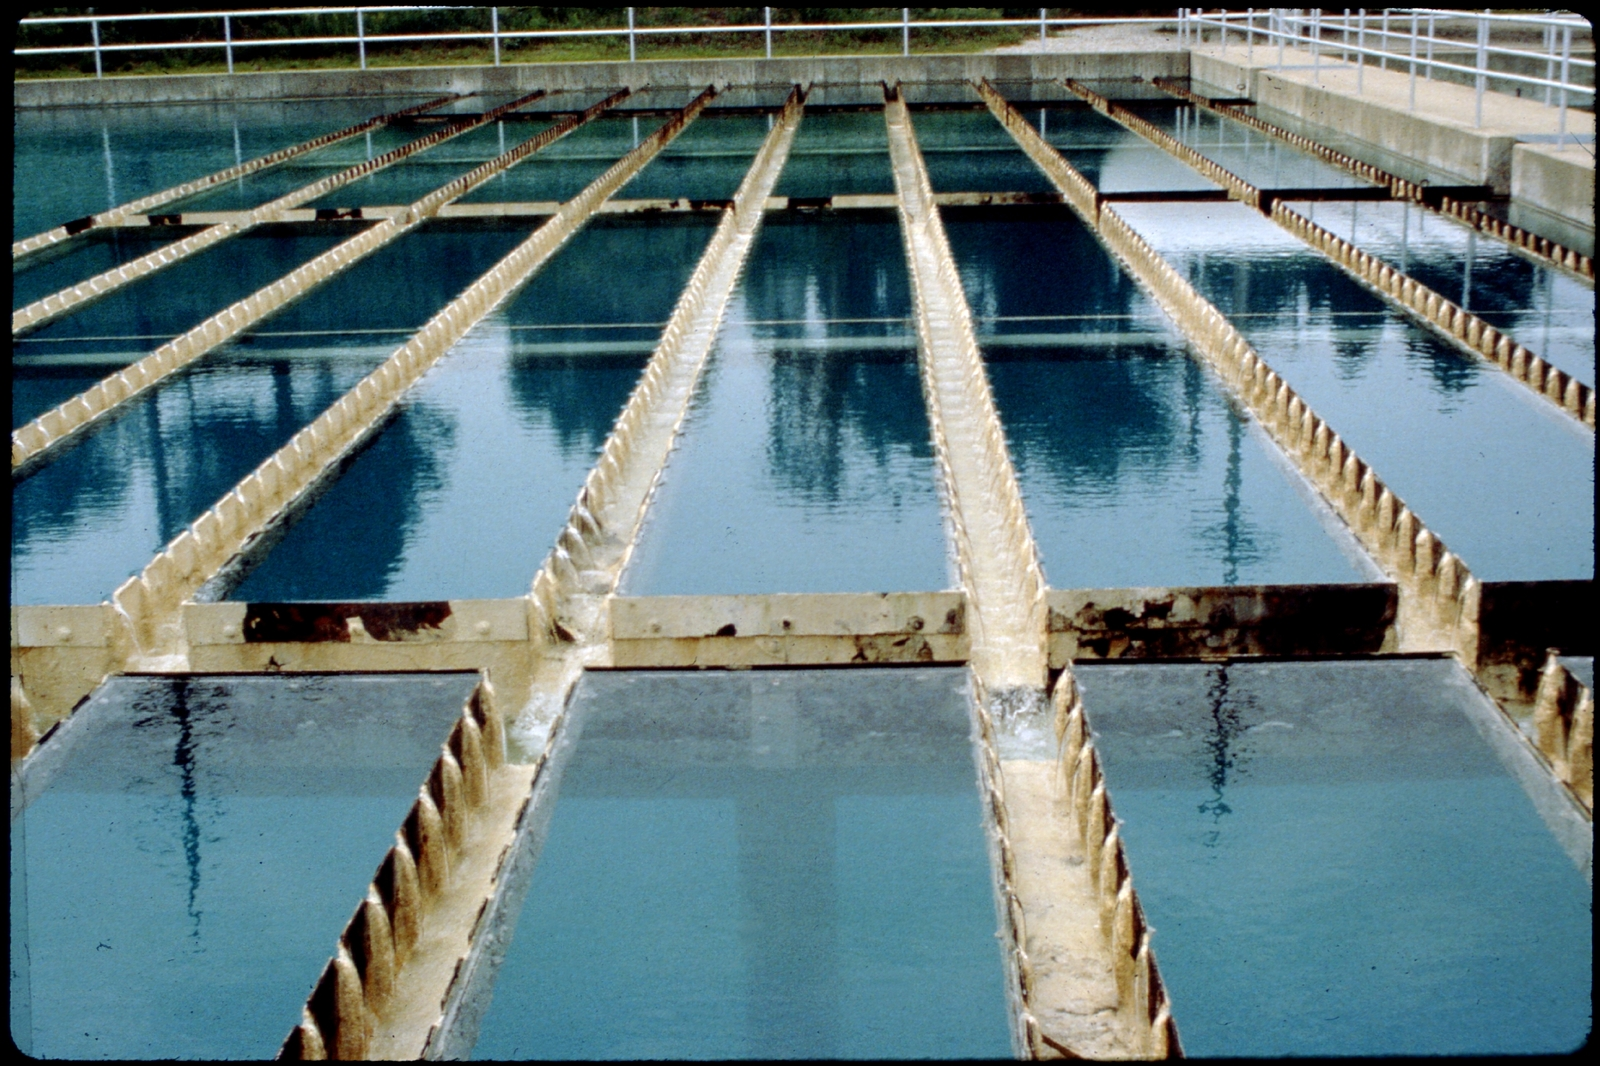 Library of Environmental Images, Office of Research and Development (ORD), September 1996 - Water - Water treatment facility